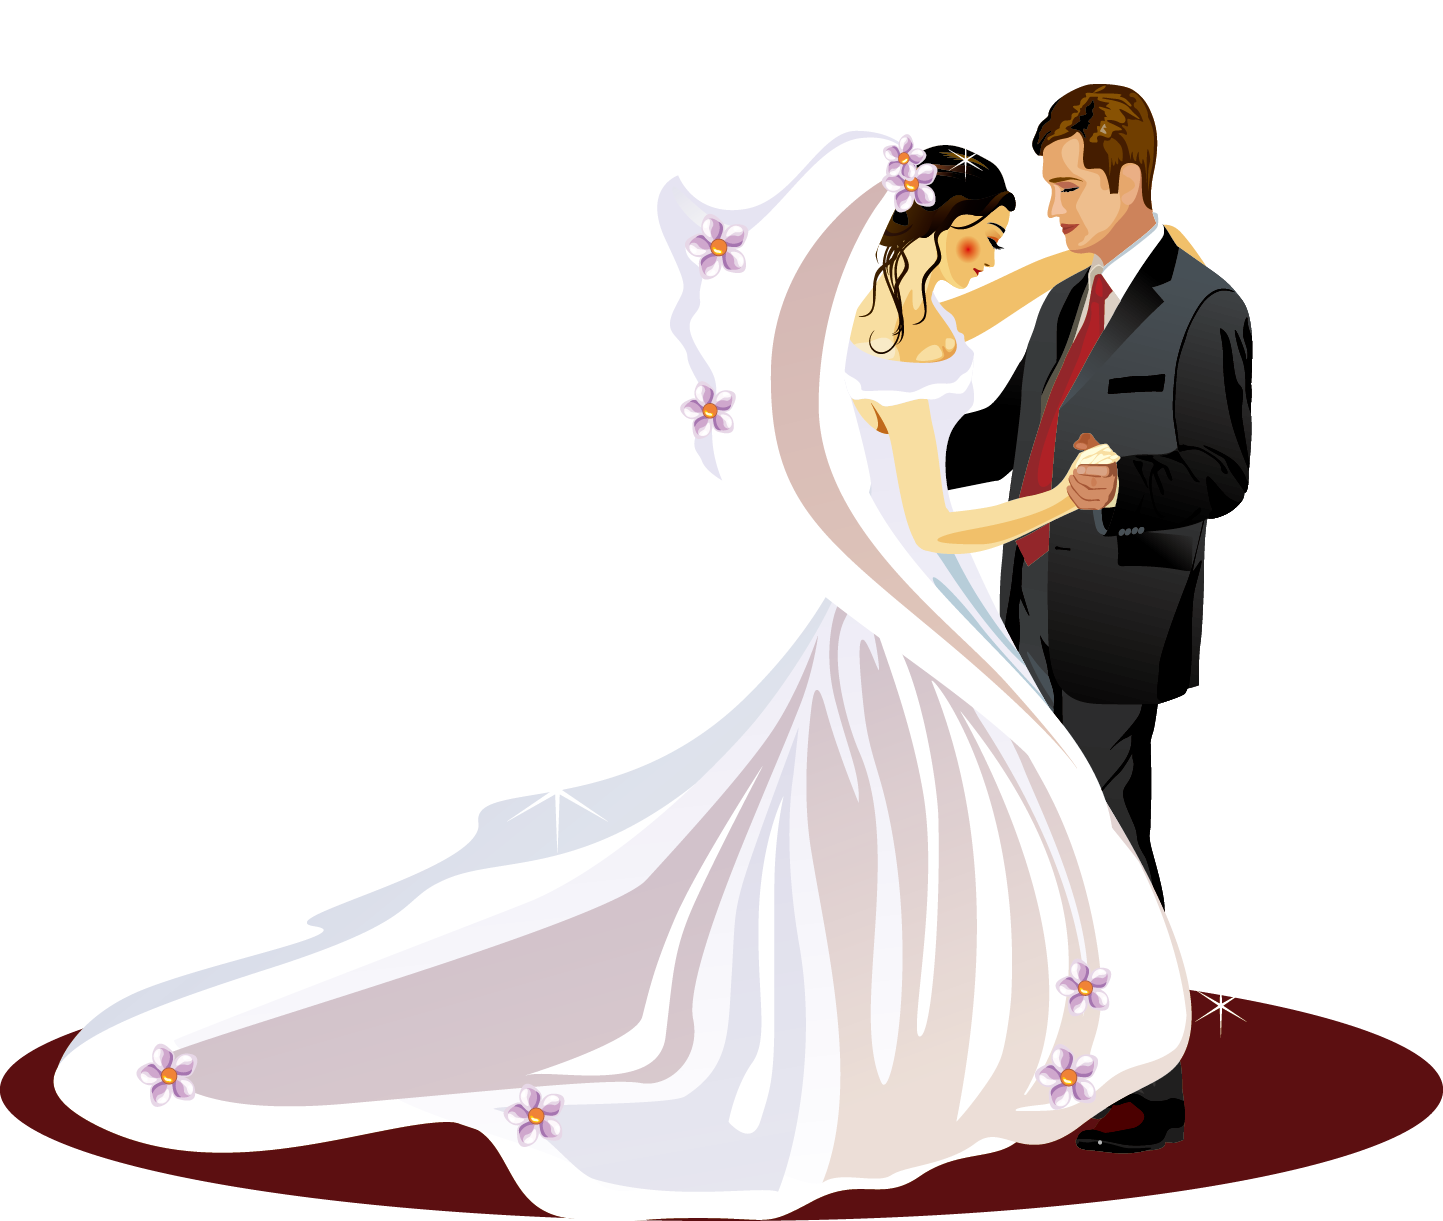 1443x1221 Wedding Invitation Bridegroom Clip Art